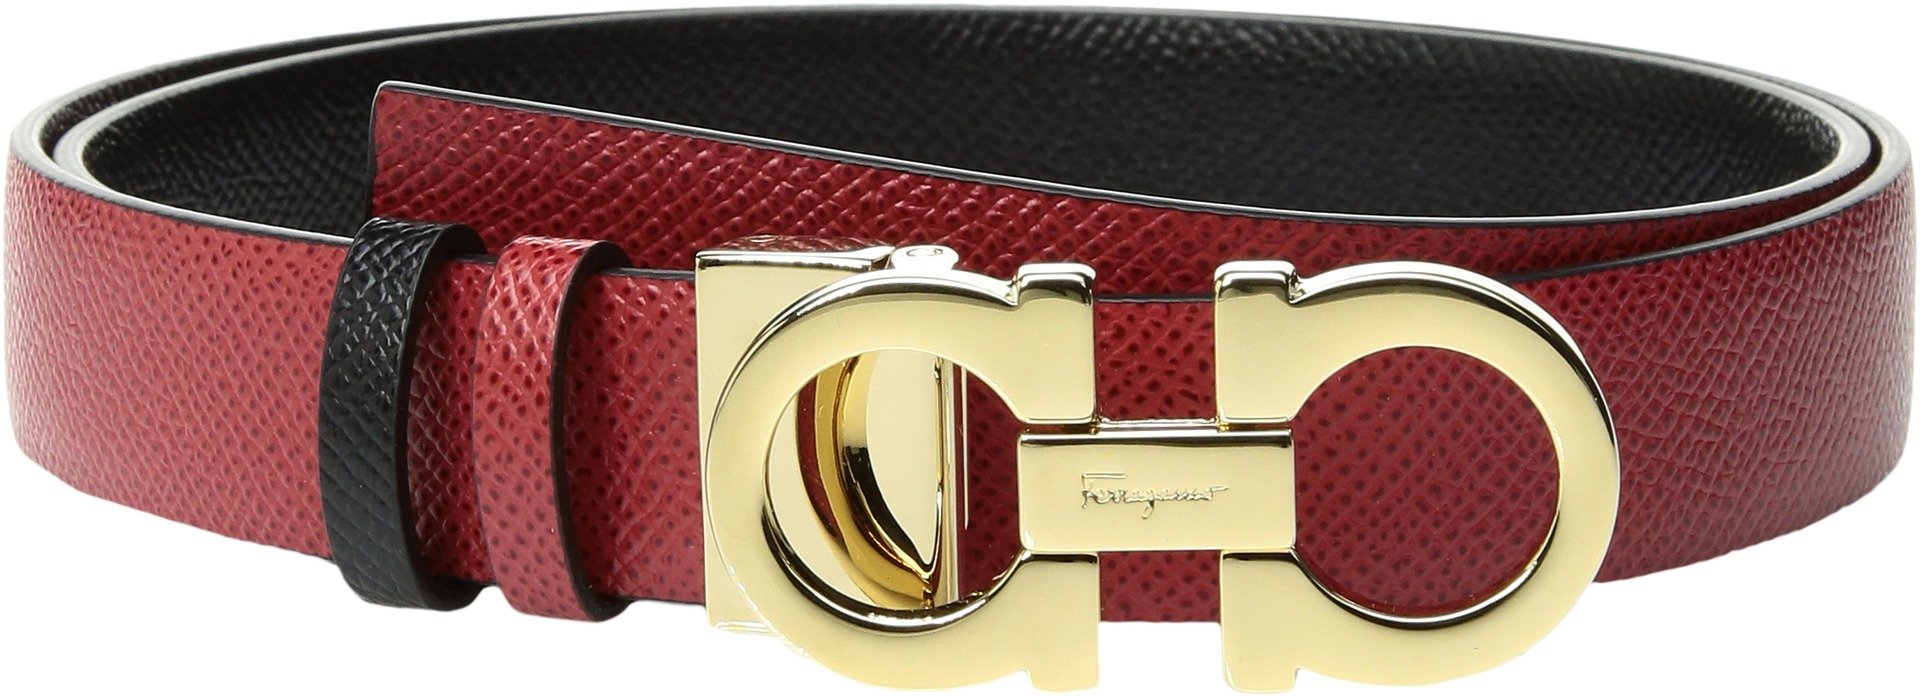 Salvatore Ferragamo Women's 23A565 Lipstick Belt by Salvatore Ferragamo